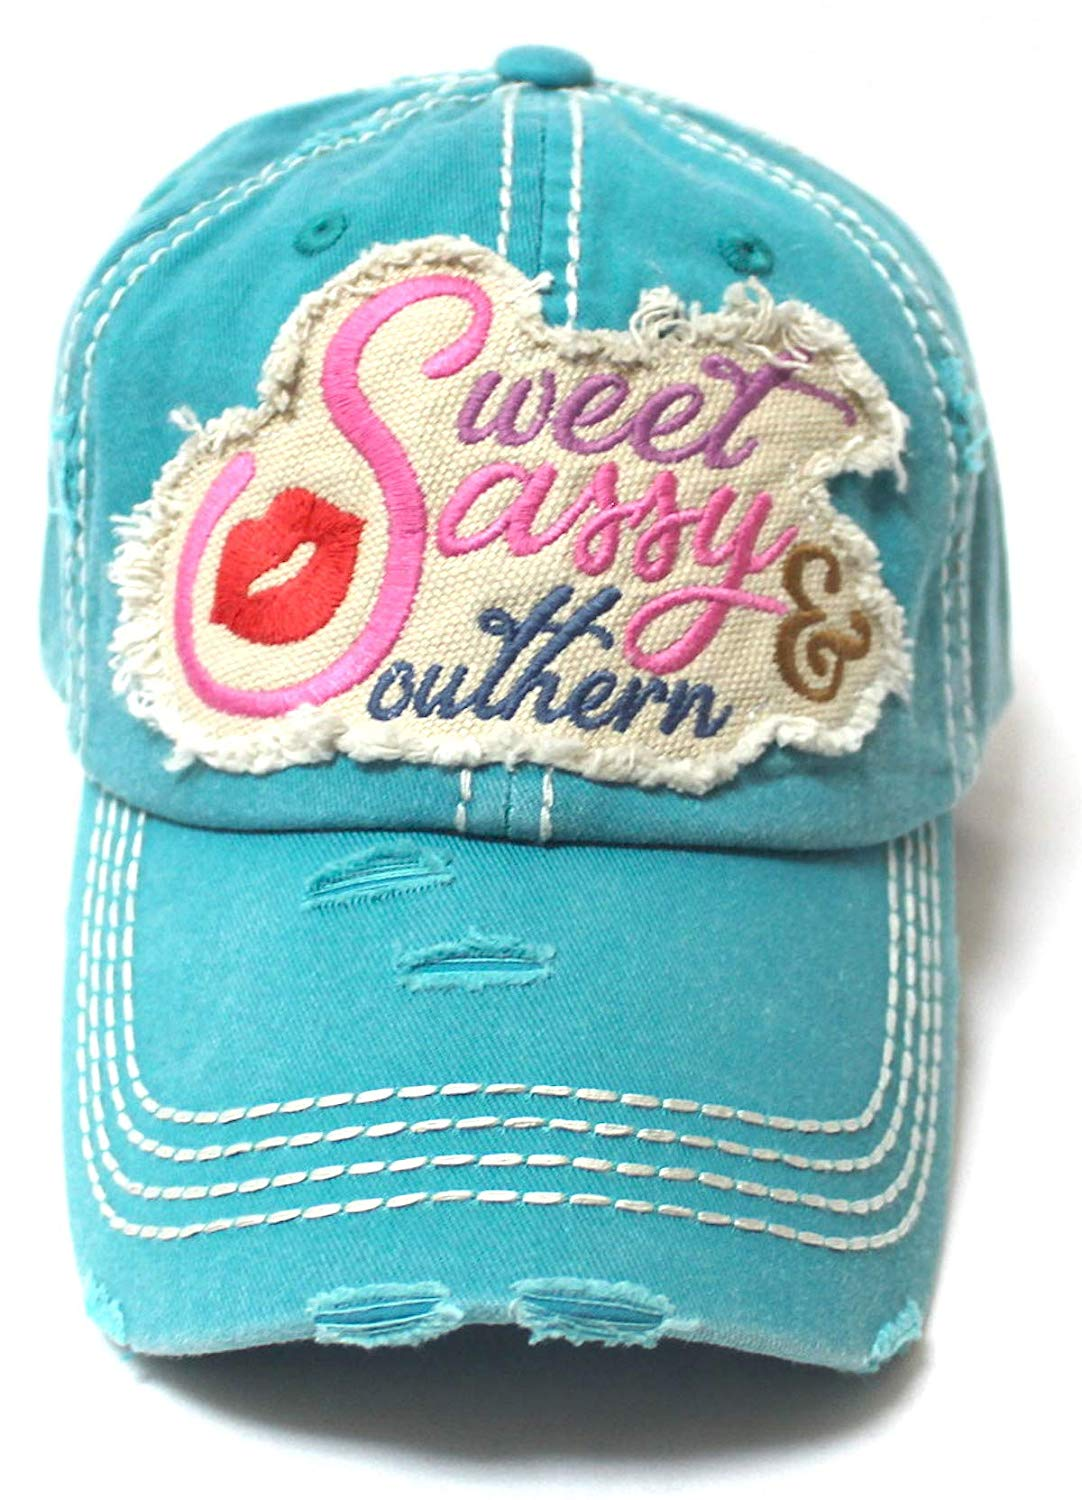 Women's Baseball Cap Sweet, Sassy & Southern Patch Embroidery Hat w/Red Kissy Lip Monogram, Turuoise - Caps 'N Vintage